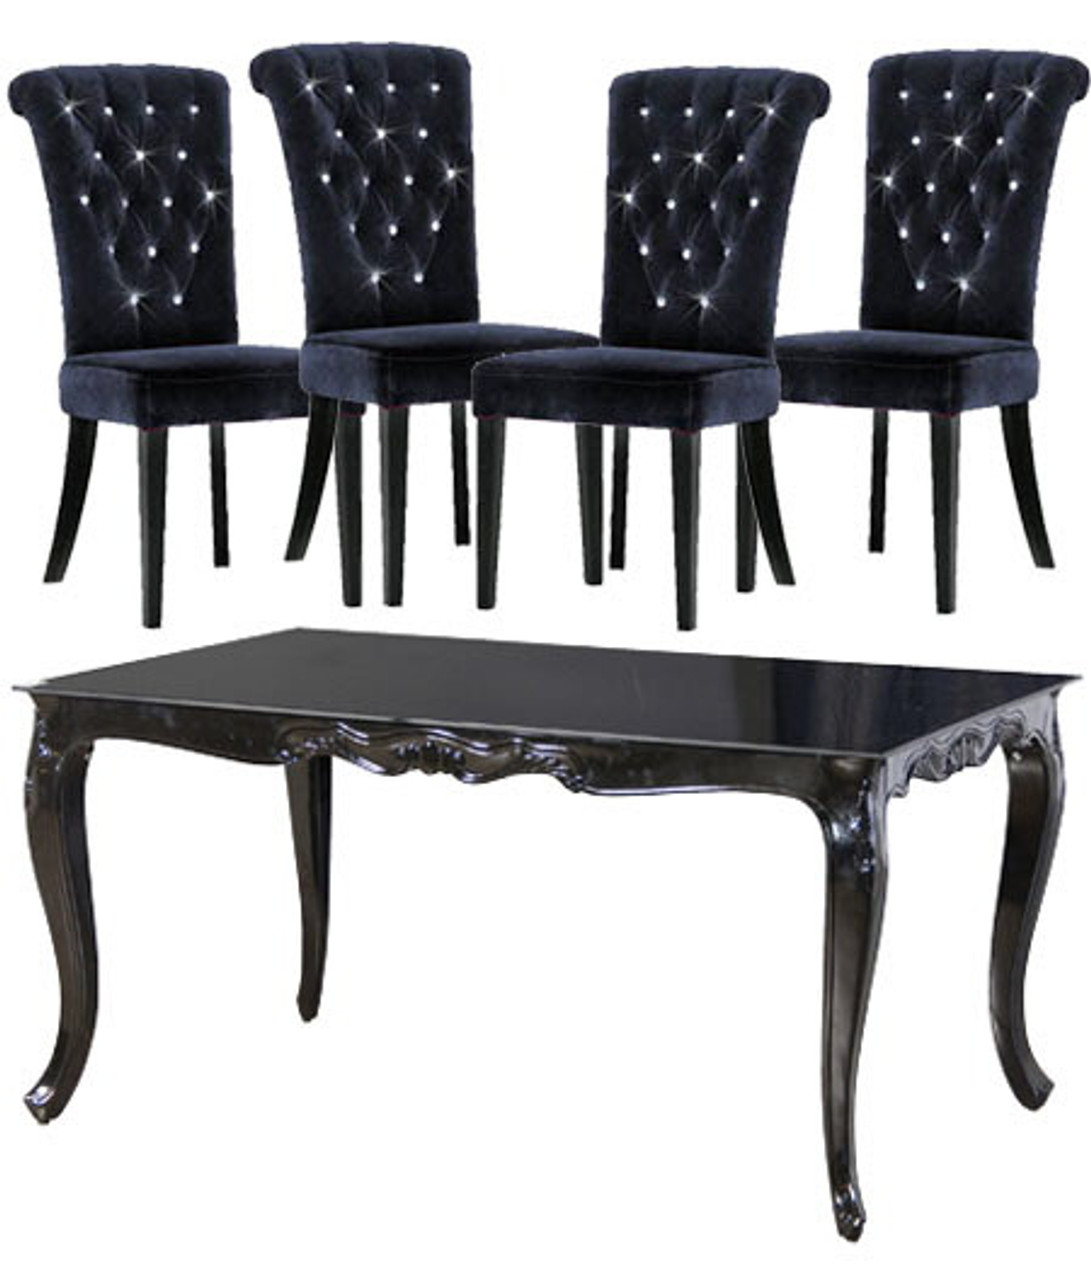 Remarkable French Dining Table Set 1 Table 4 Chairs High Gloss Noir Uwap Interior Chair Design Uwaporg